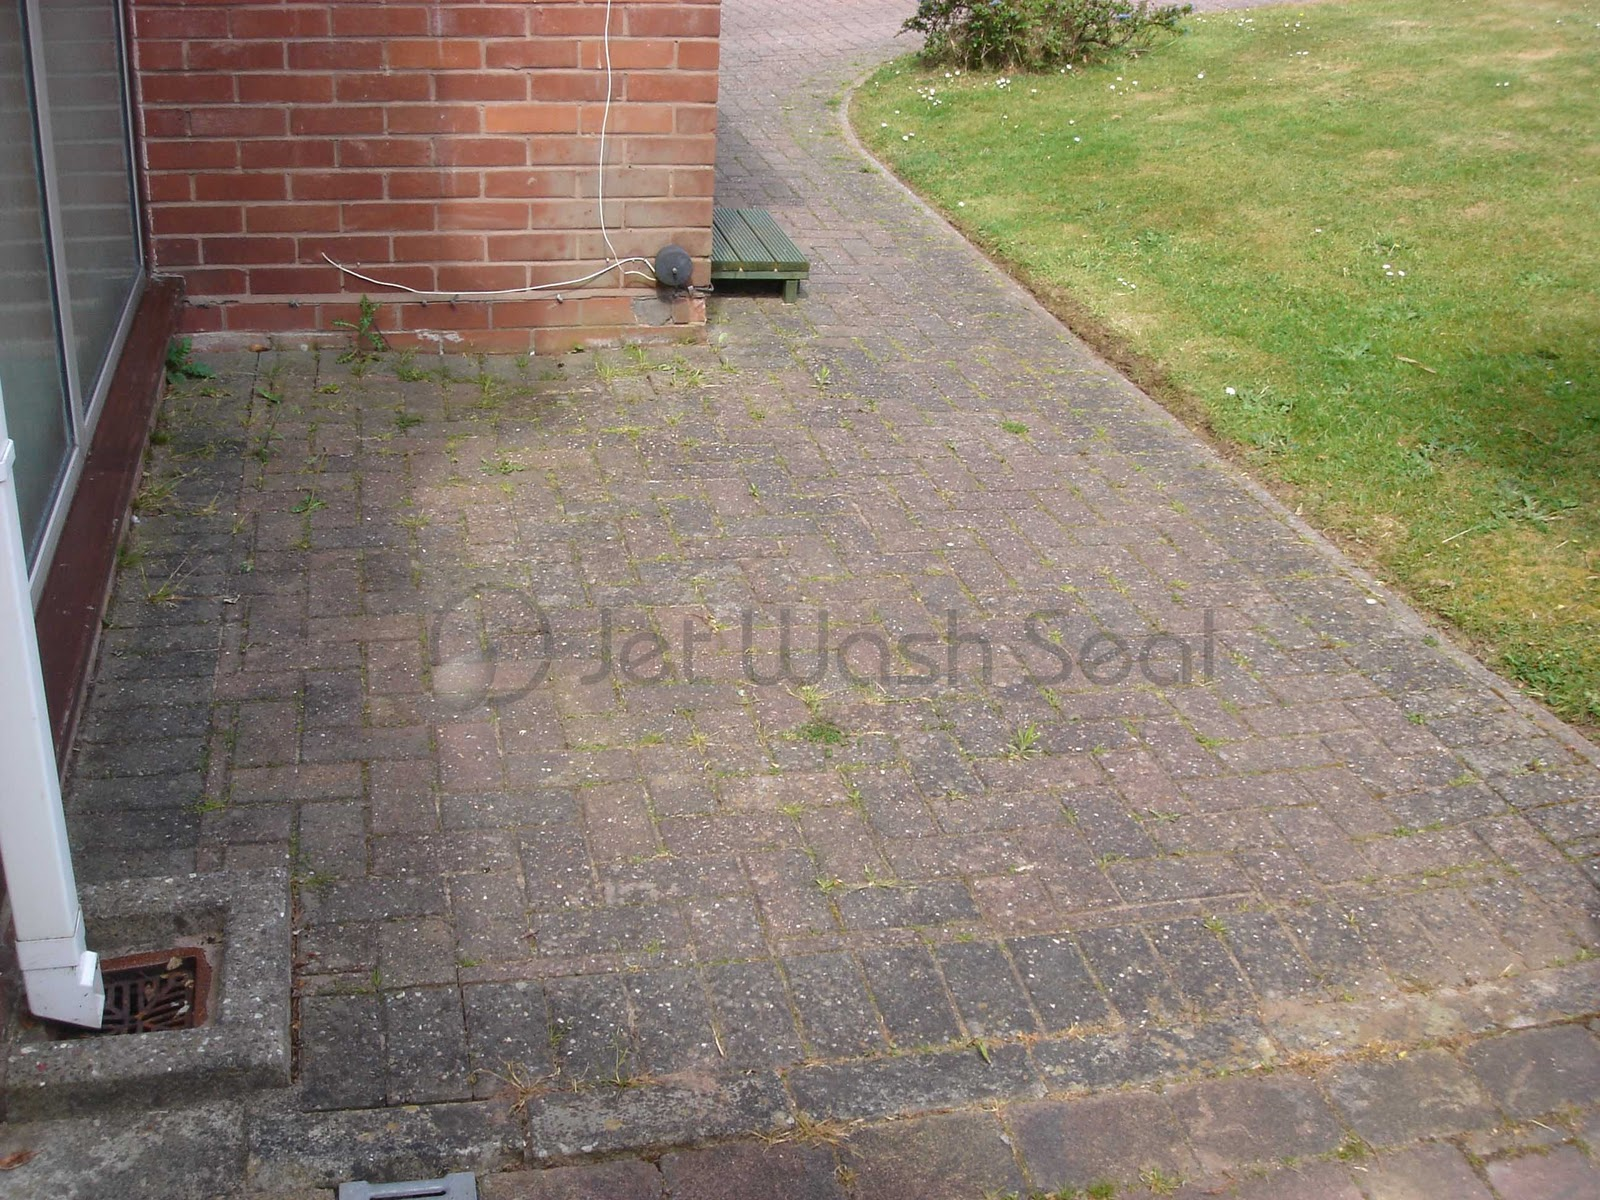 The Best Solution To Keep Driveways Free From Weeds And Protected From Oil  Stains Is To Seal Them With A Good Quality Sealer. As Registered Installers  Of ...